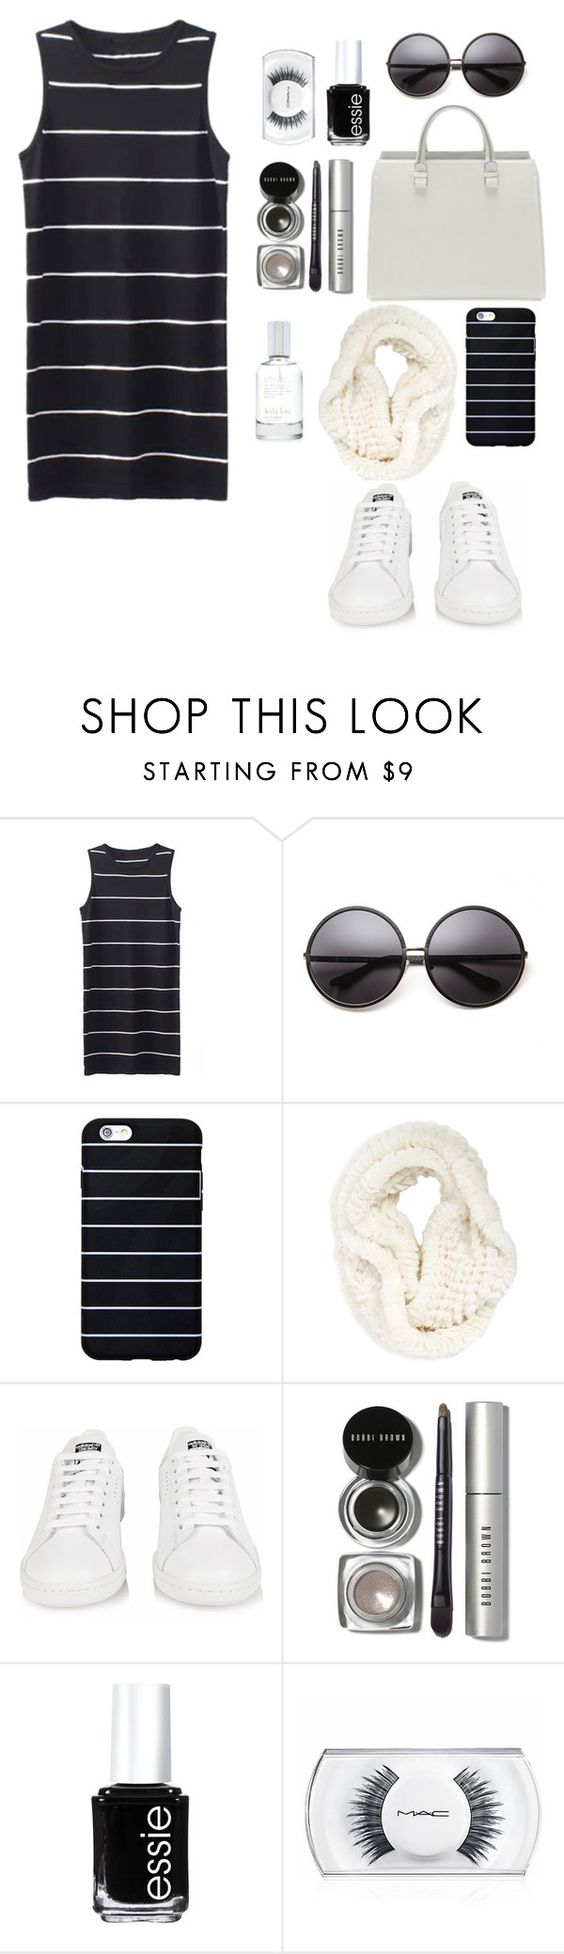 """Untitled #625"" by soosoali ❤ liked on Polyvore featuring House of Harlow 1960, La Fiorentina, adidas, Bobbi Brown Cosmetics, Essie, MAC Cosmetics and Splendid"